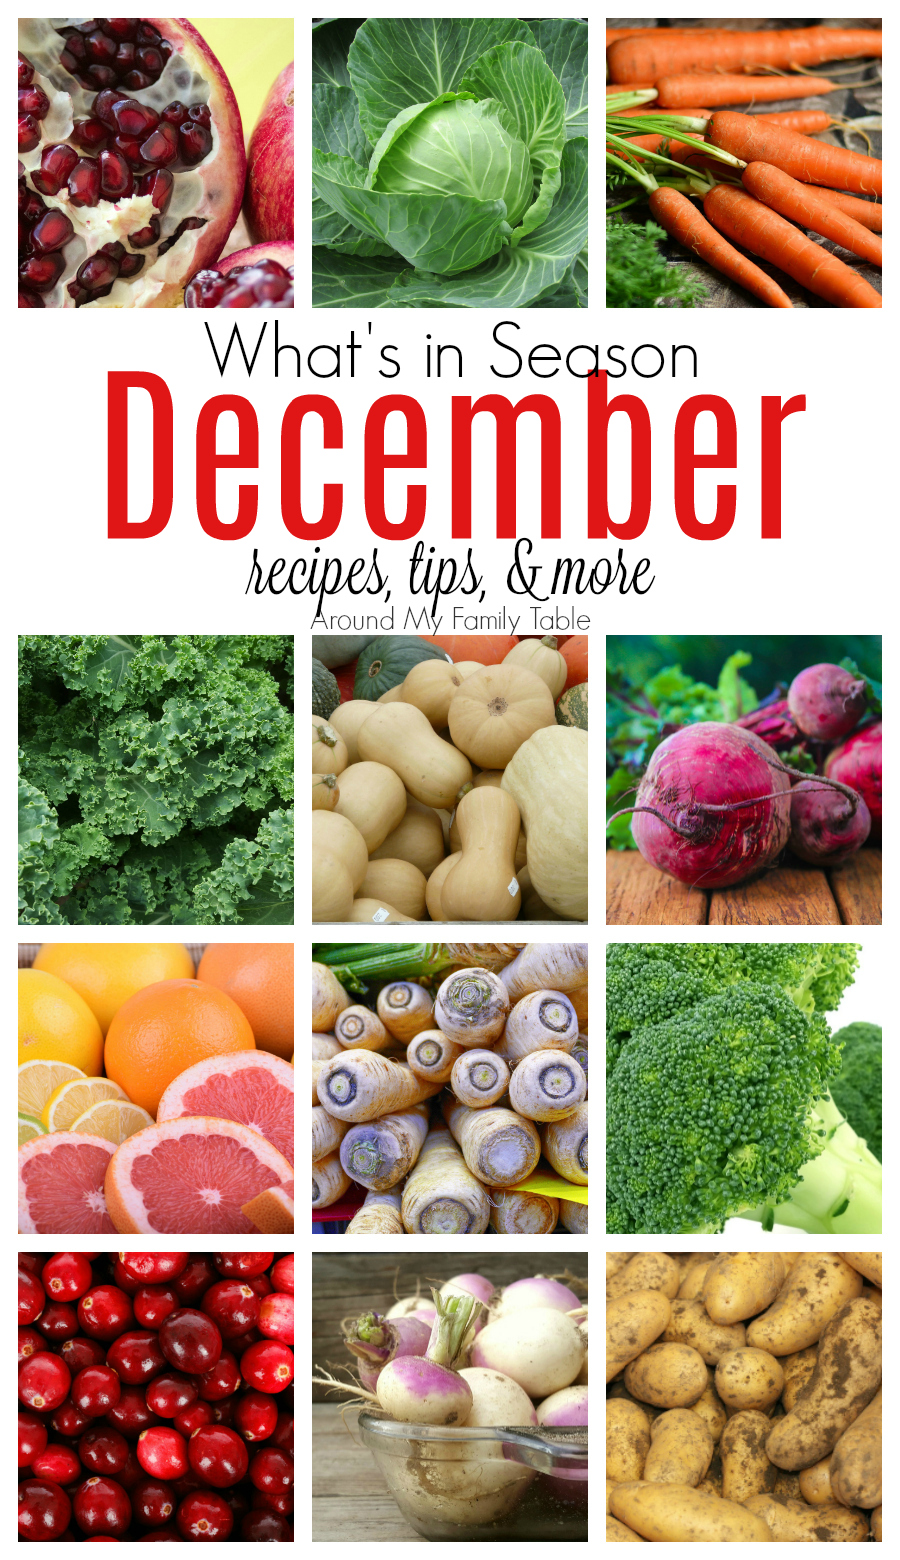 It's time for cranberries & winter squash! This December Seasonal Produce guide has recipes, tips, and more for everything in season this month.